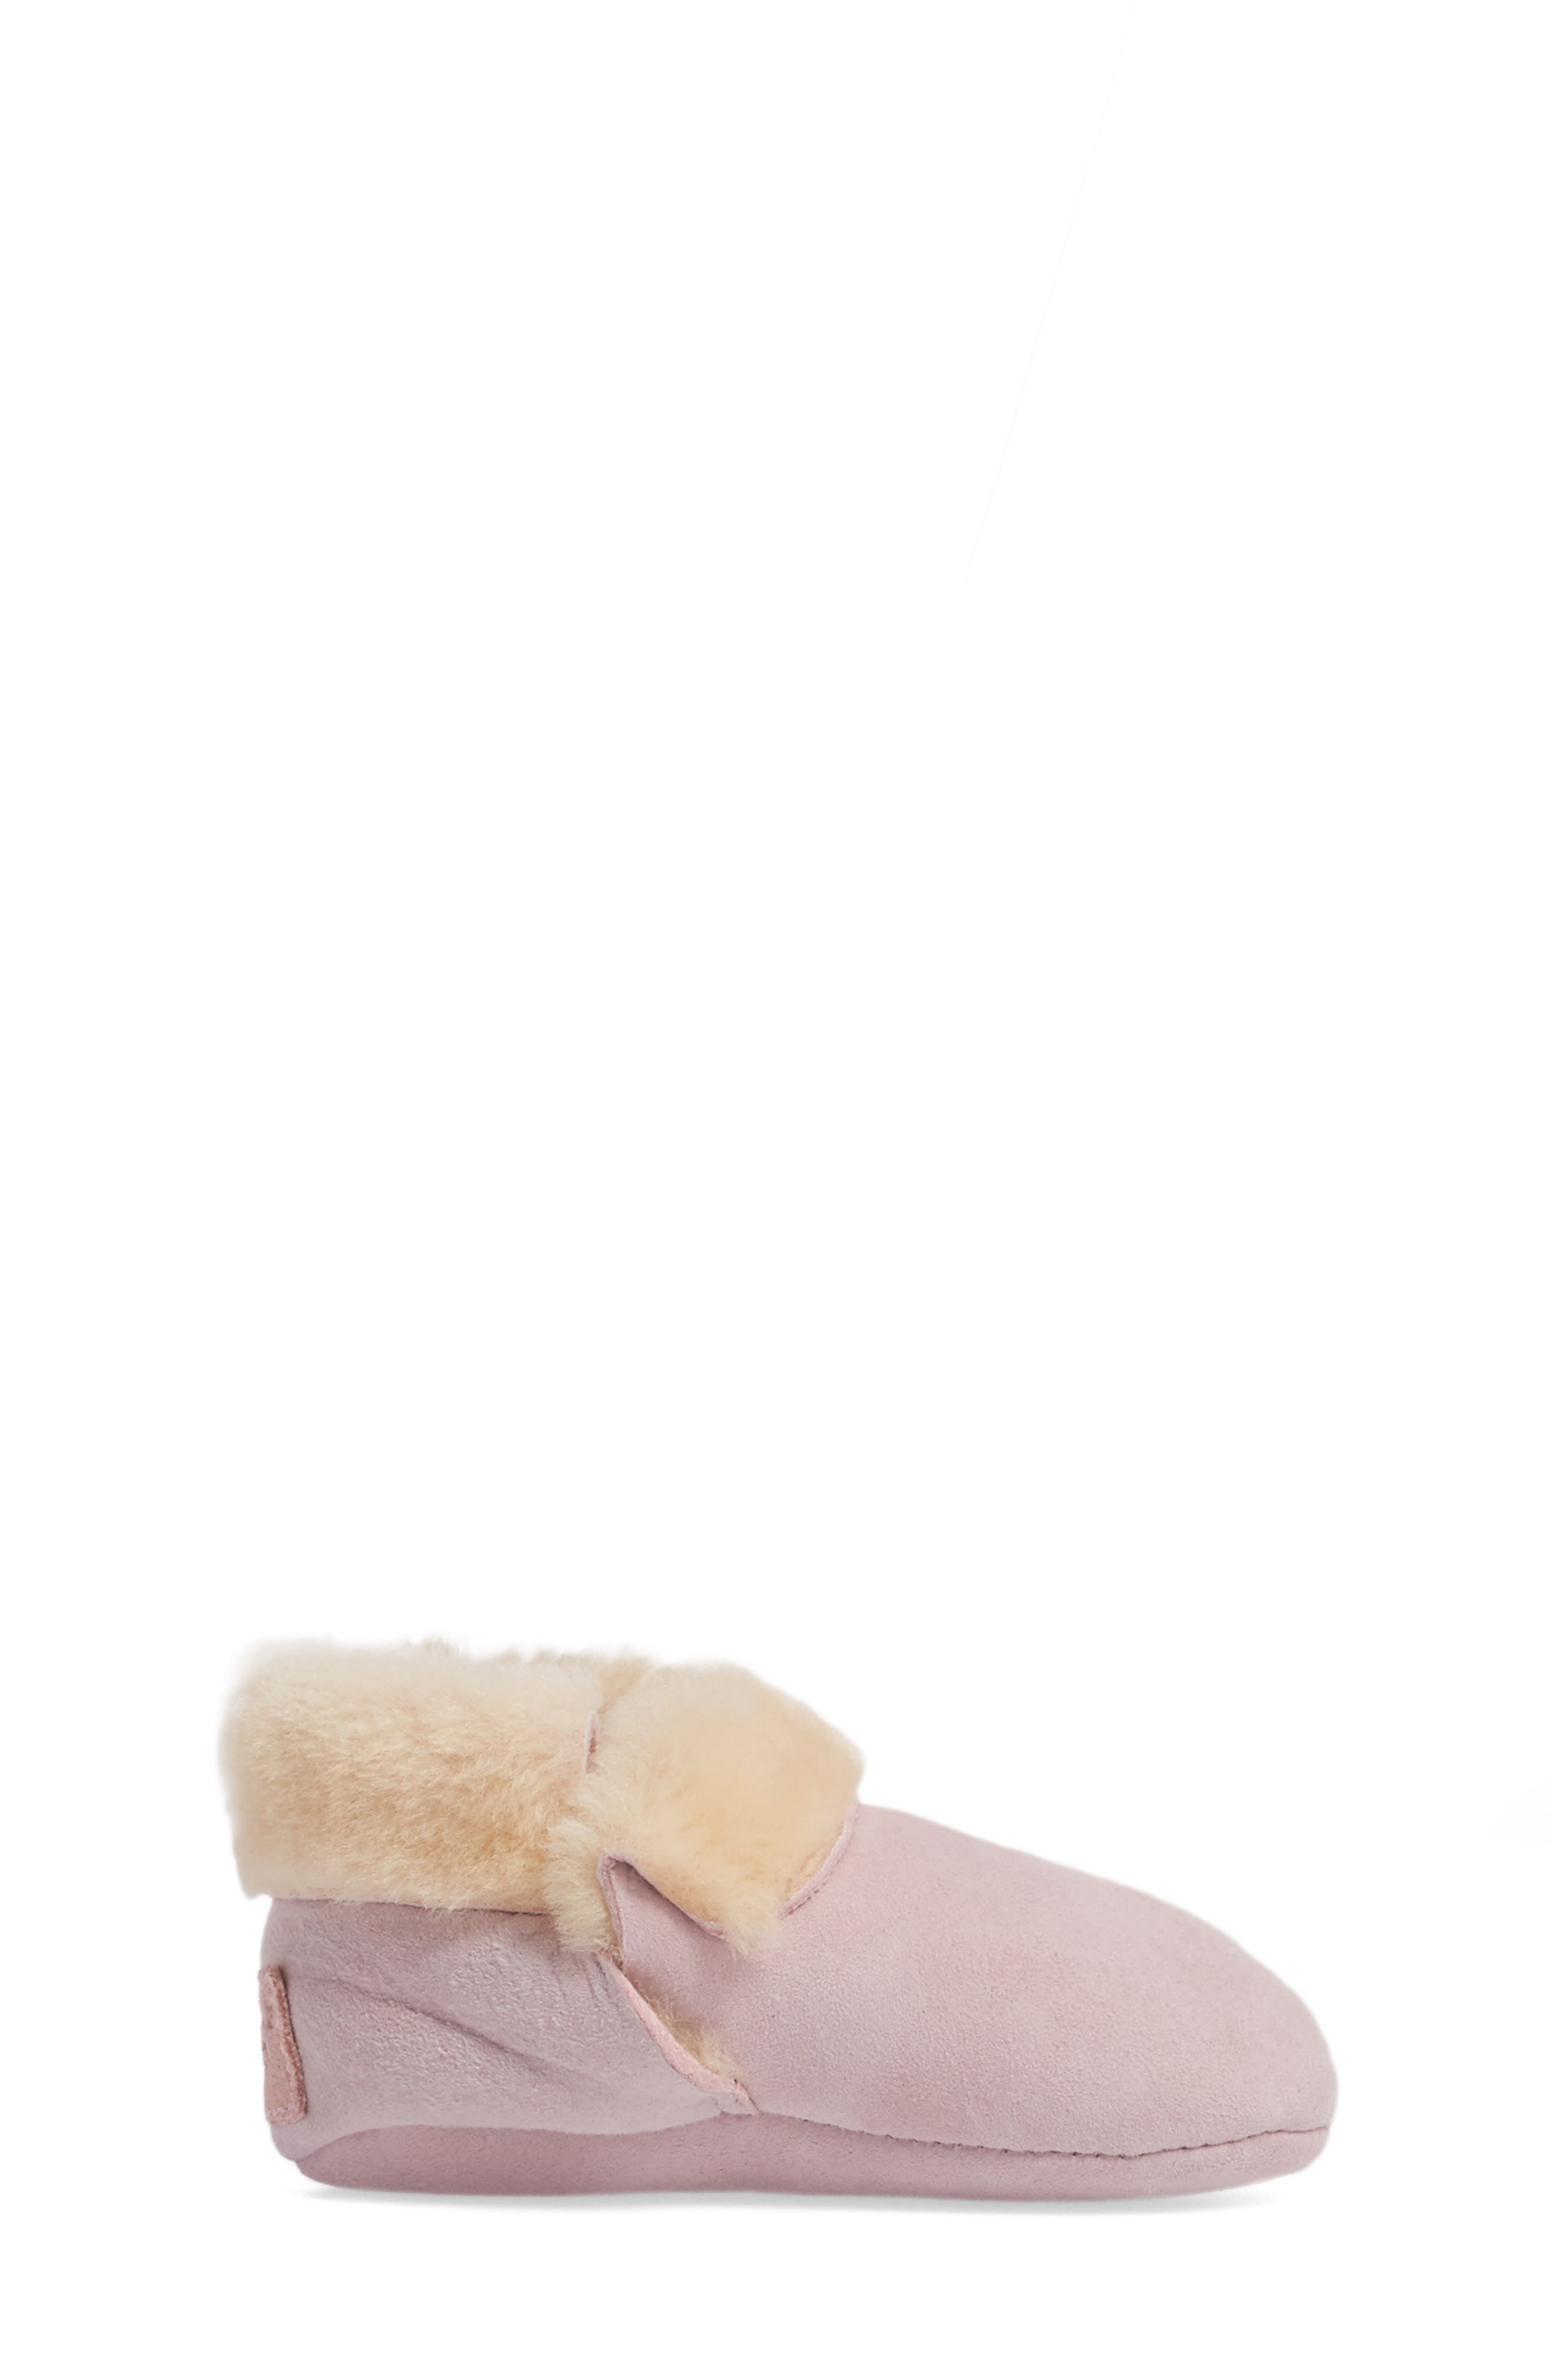 Solvi Genuine Shearling Low Cuffed Bootie,                             Alternate thumbnail 3, color,                             BABY PINK